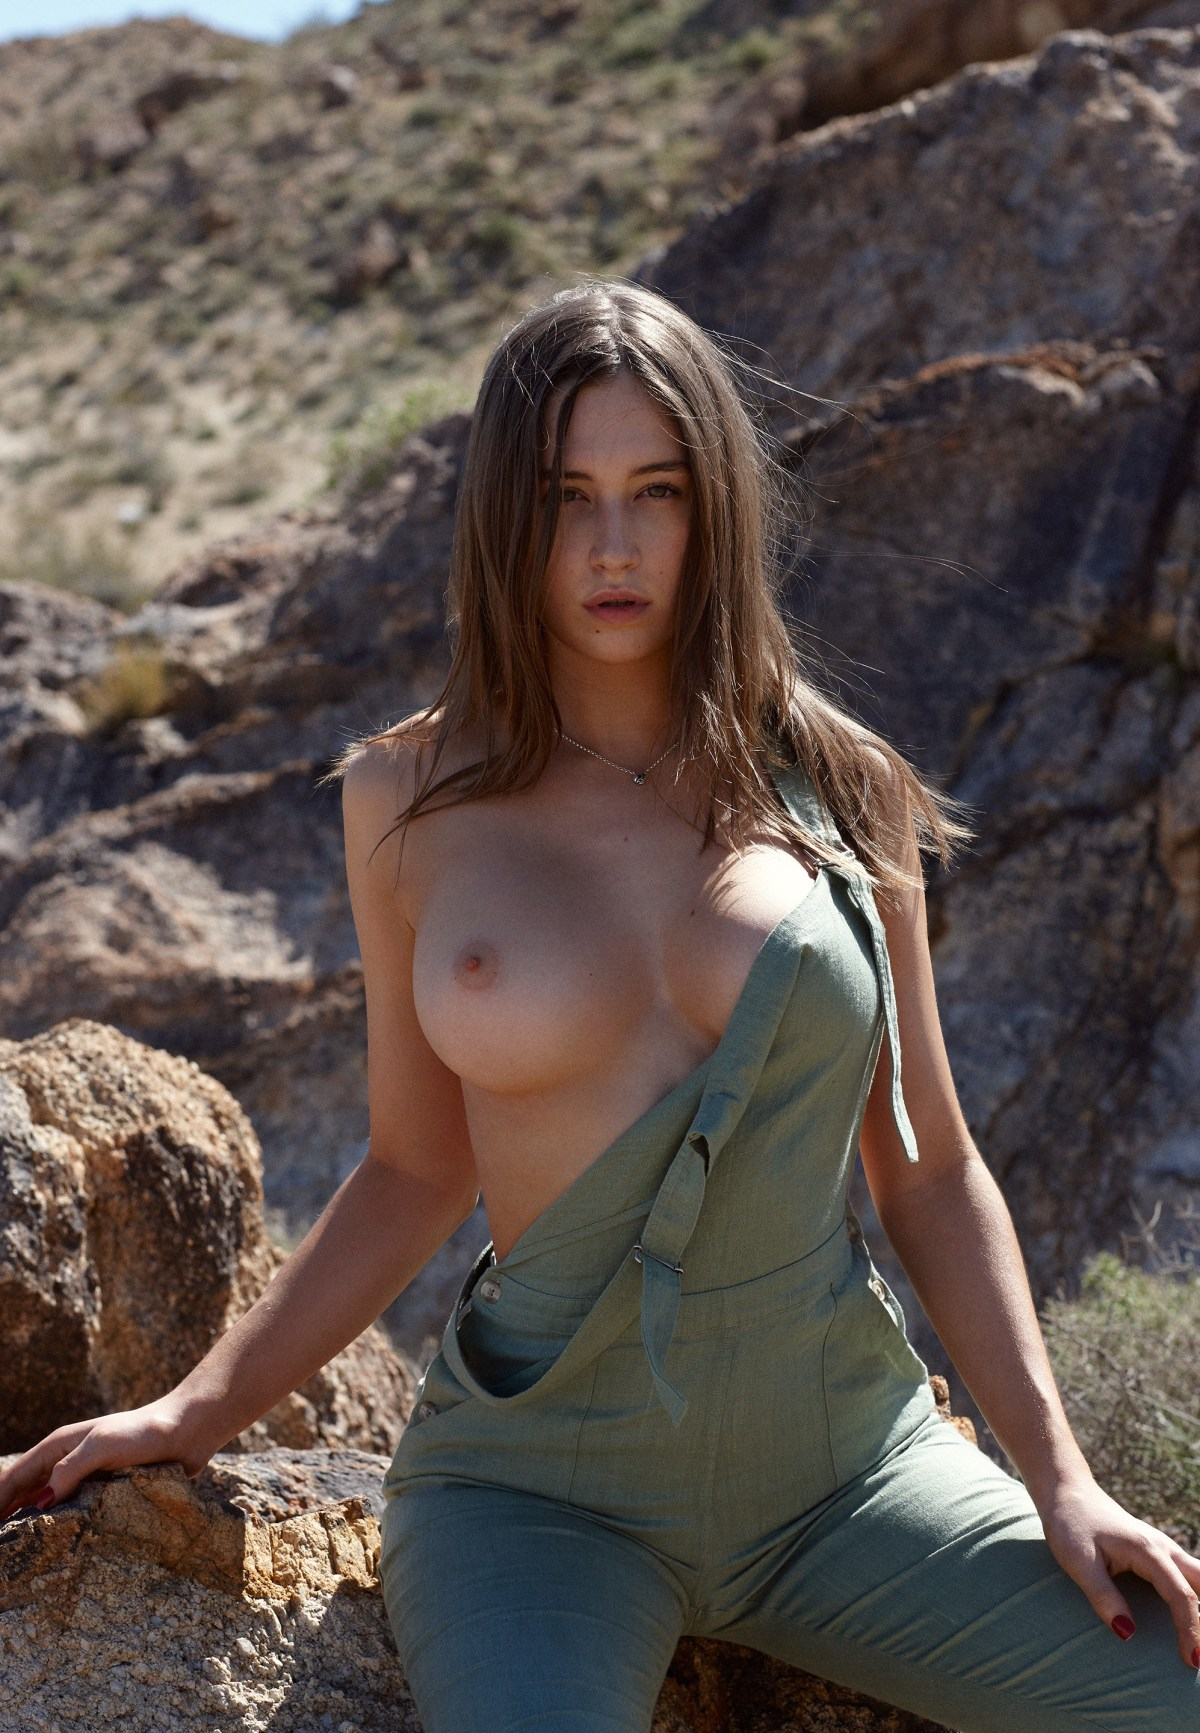 Elsie Hewitt by Stephan Würth for Playboy